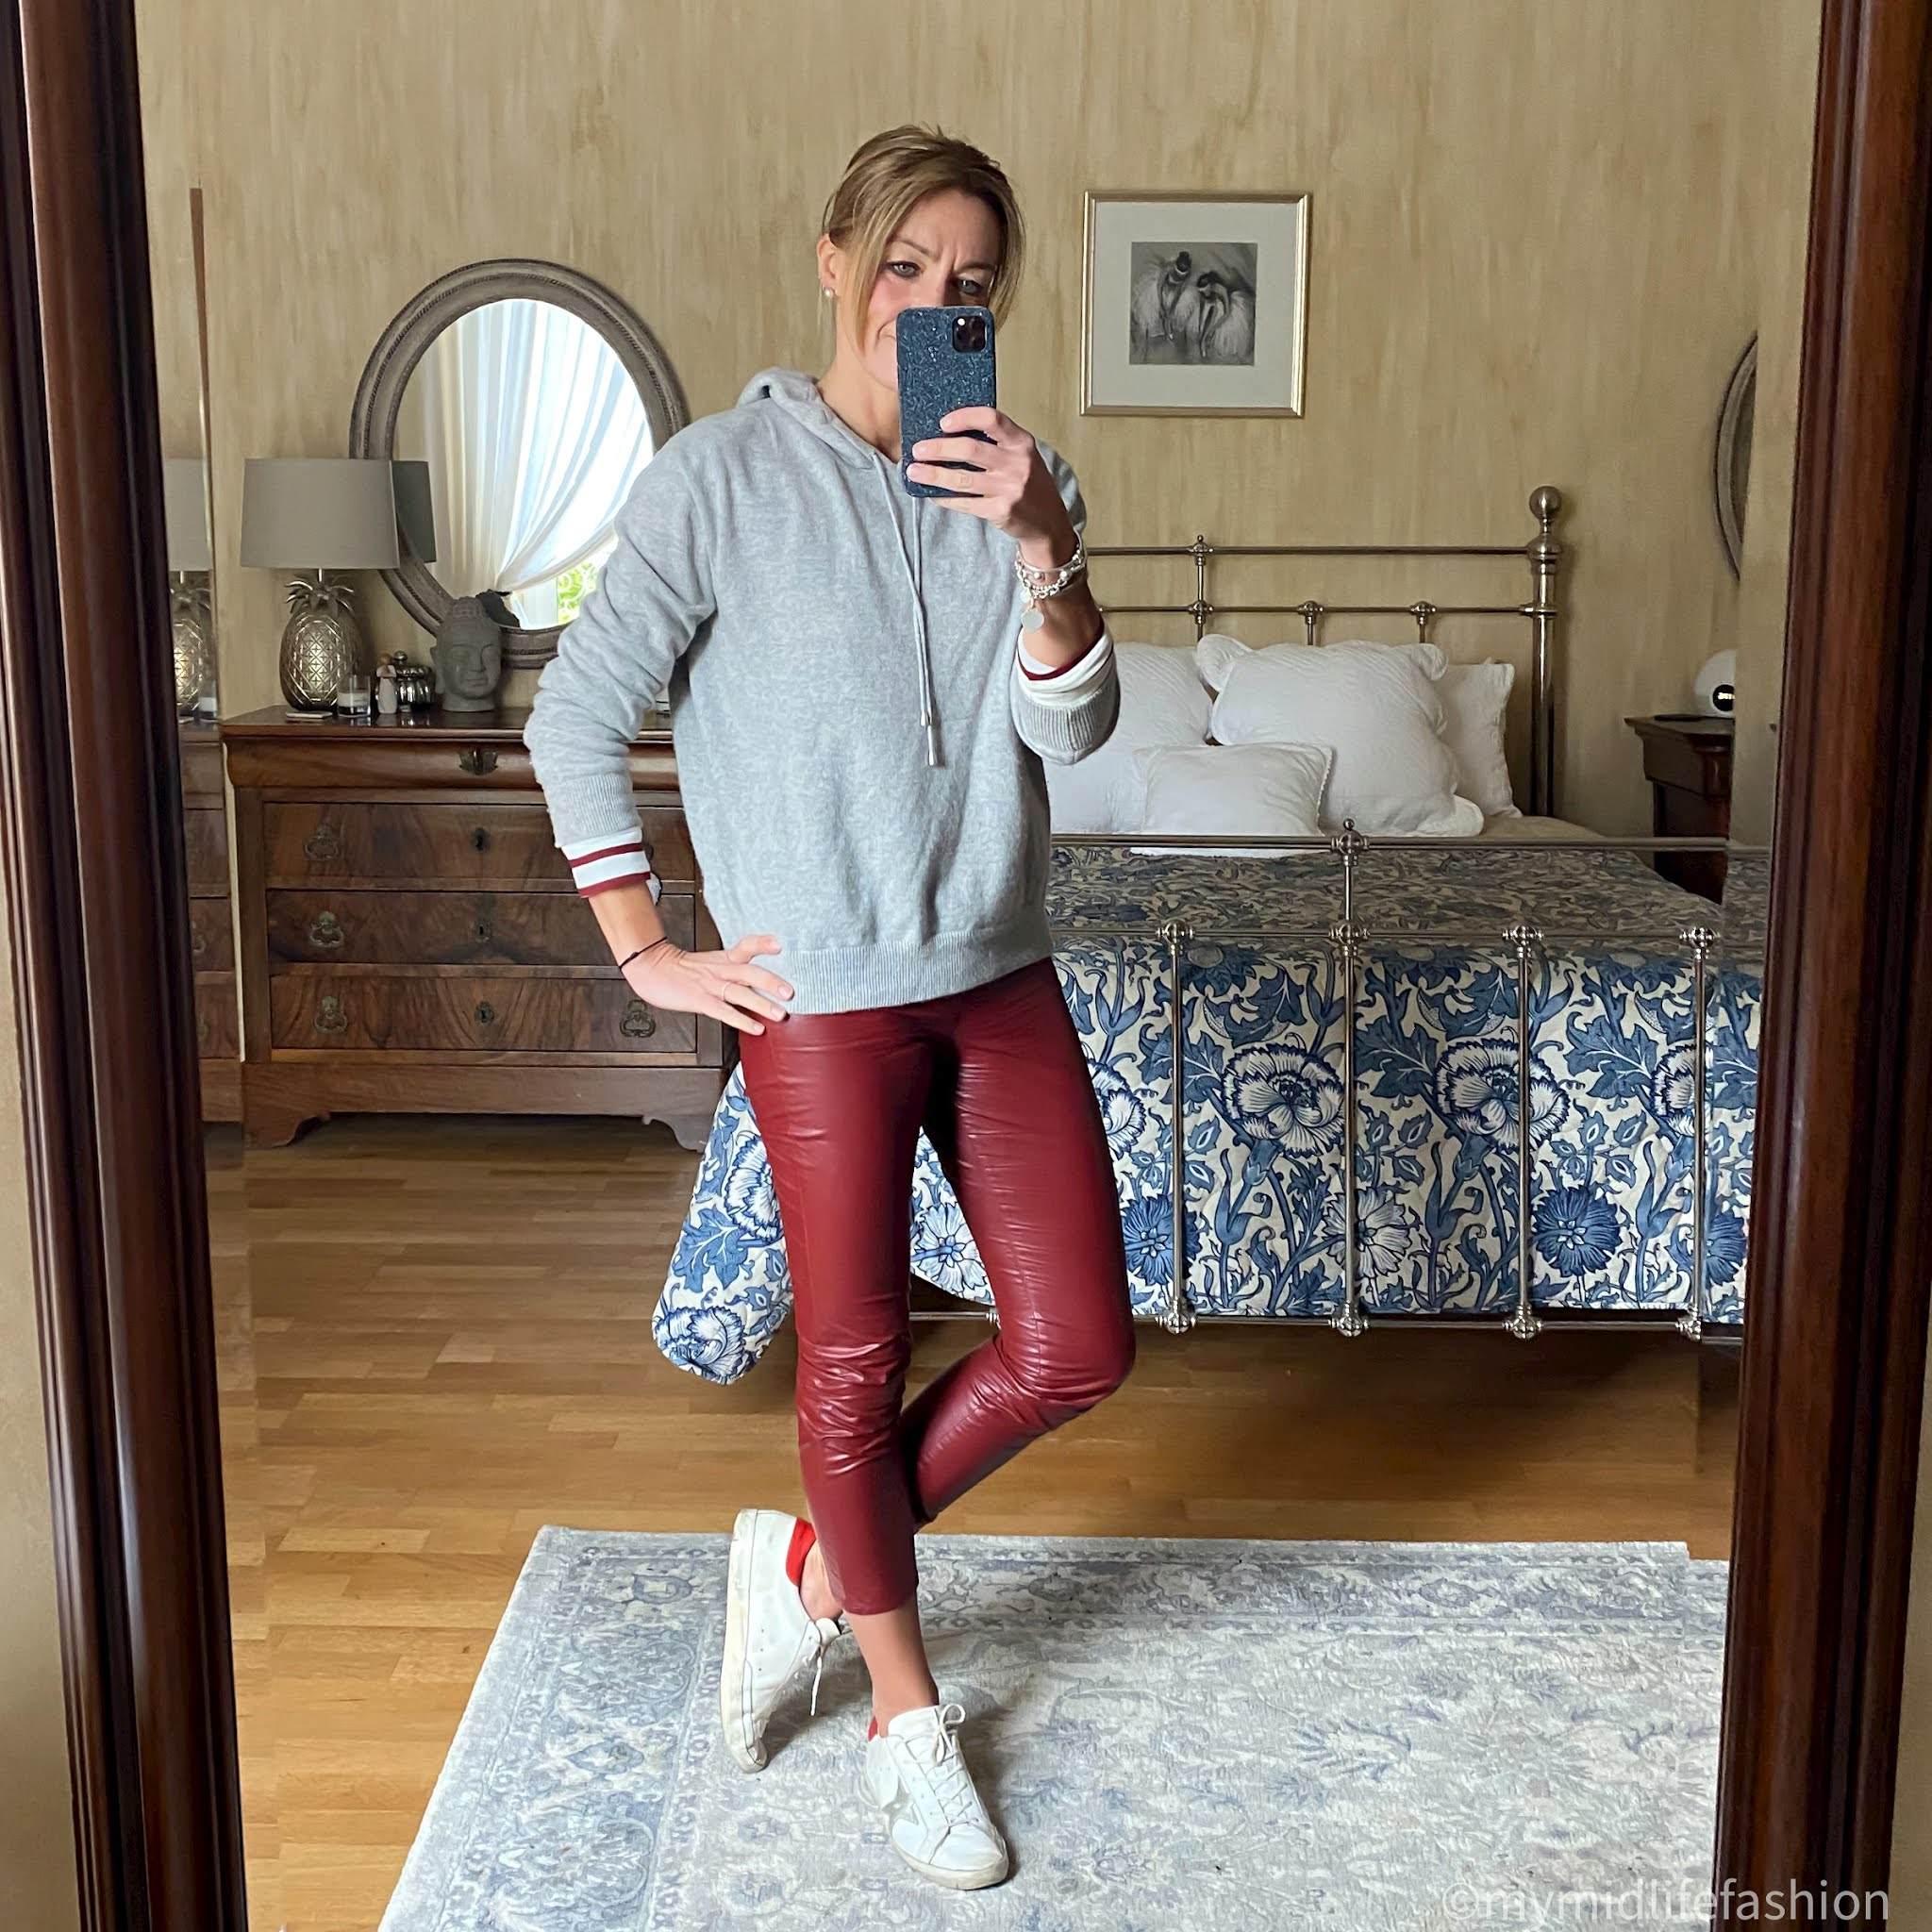 my midlife fashion, marks and Spencer cashmere hooded jumper, baukjen Emma breton top, Isabel Marant Etoile faux leather trousers, golden goose superstar low top leather trainers